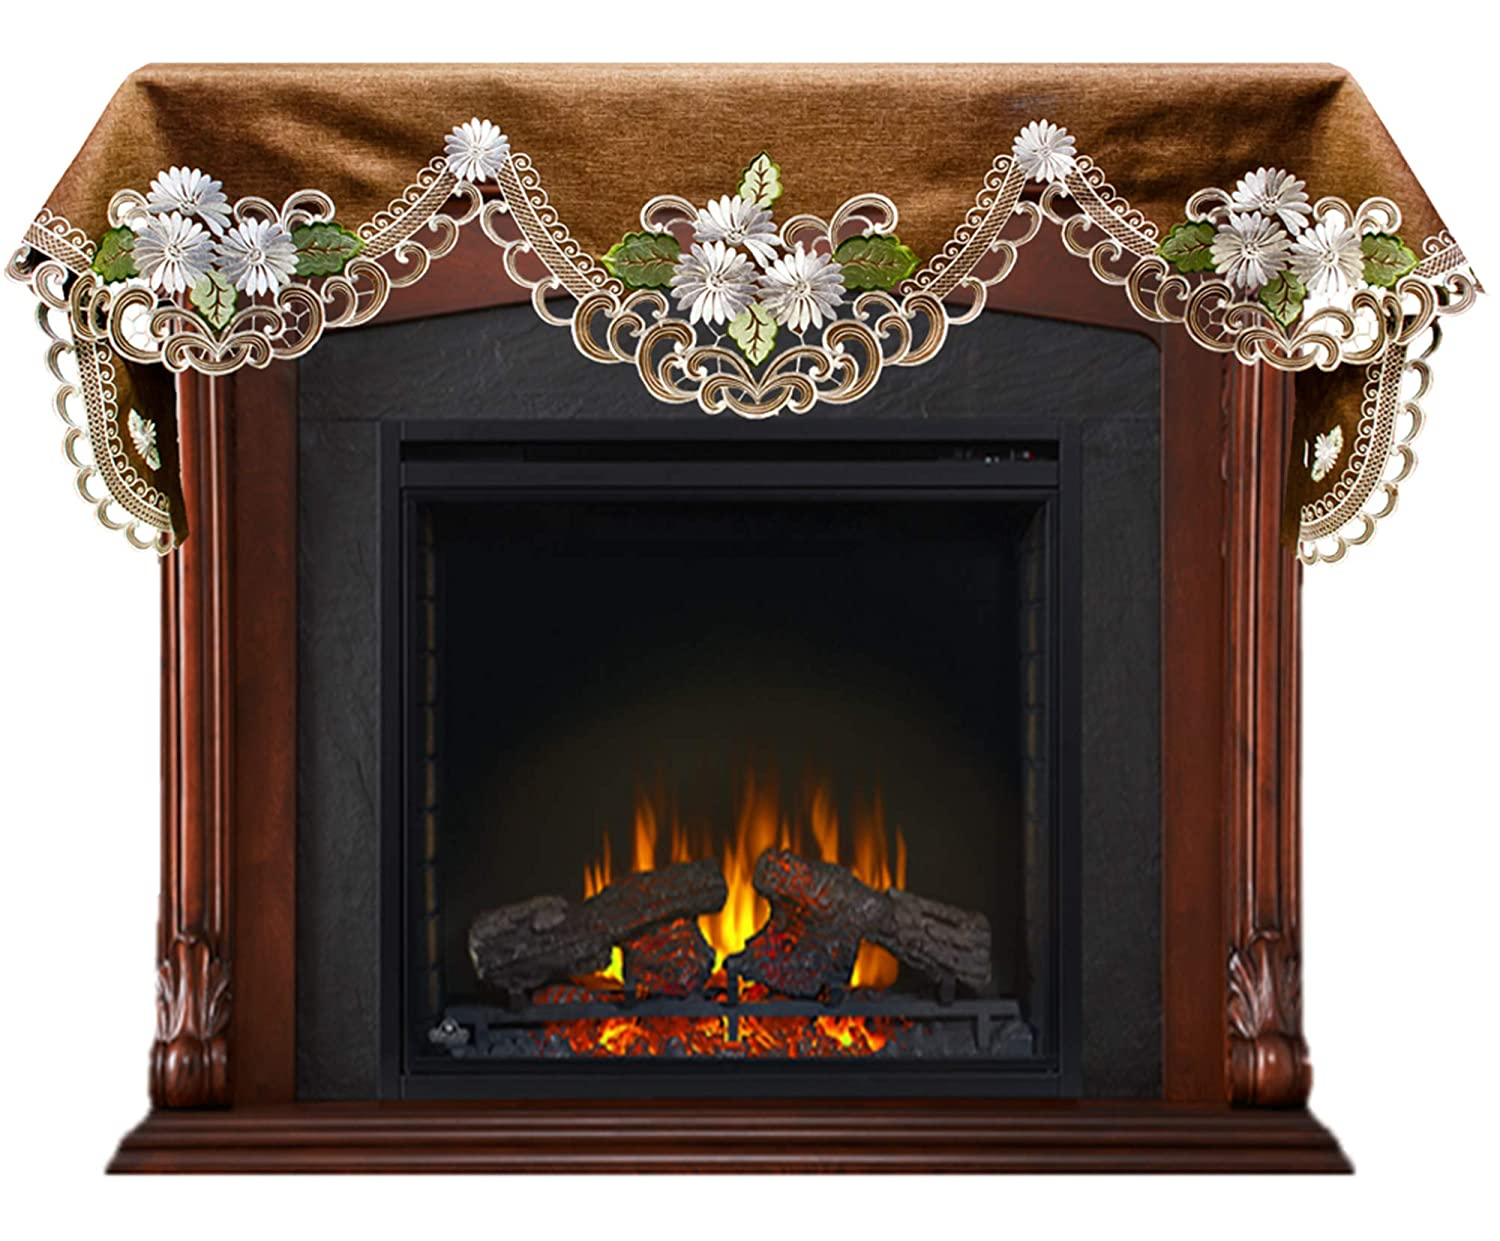 Embroidered Fireplace Mantel Scarf with White Daisy on Brown Linen and Cut Work 19 W x 90 L